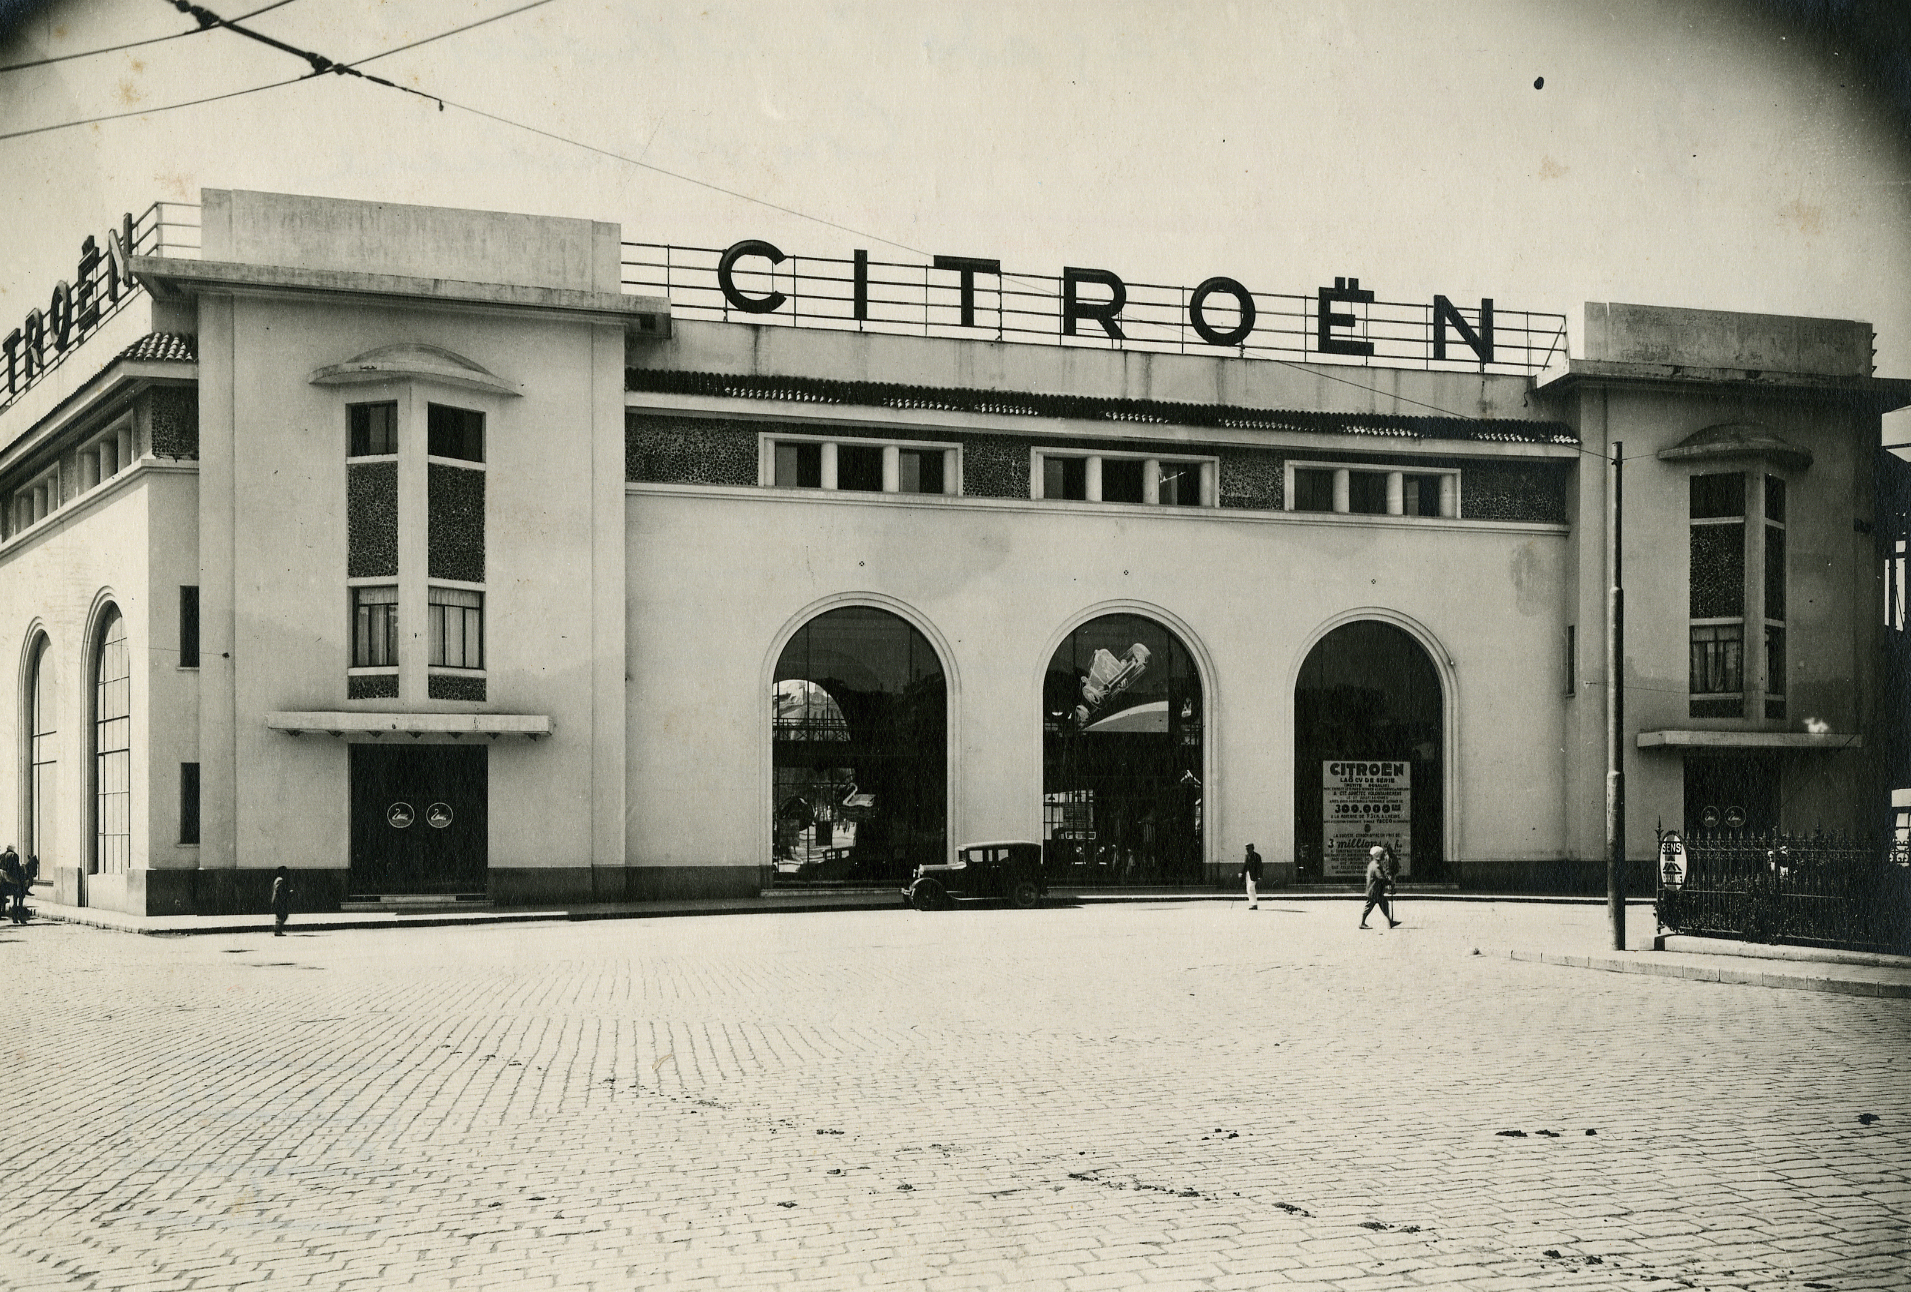 Ancien garage citro n constantine archives d for Garage citroen le perreux